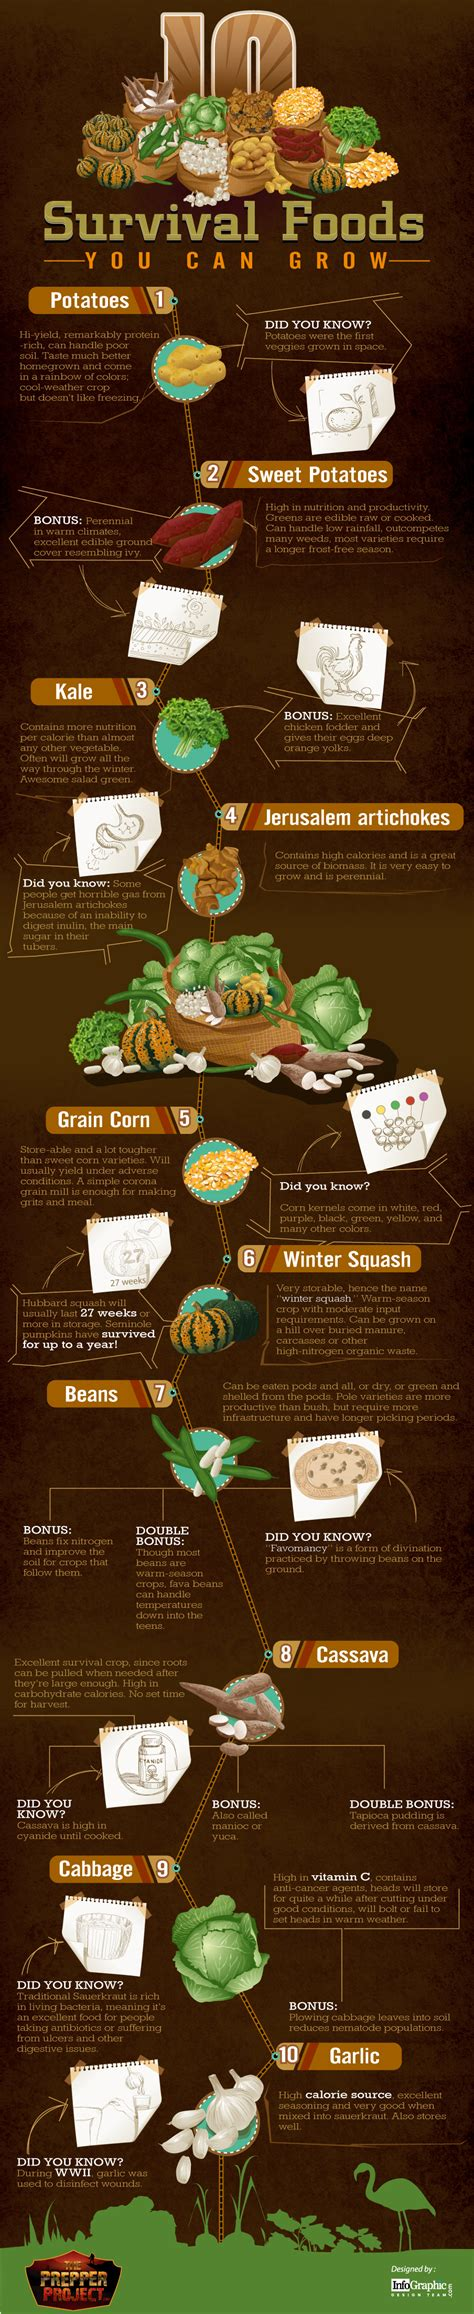 best survival food survival food 10 you should be growing yourself ready